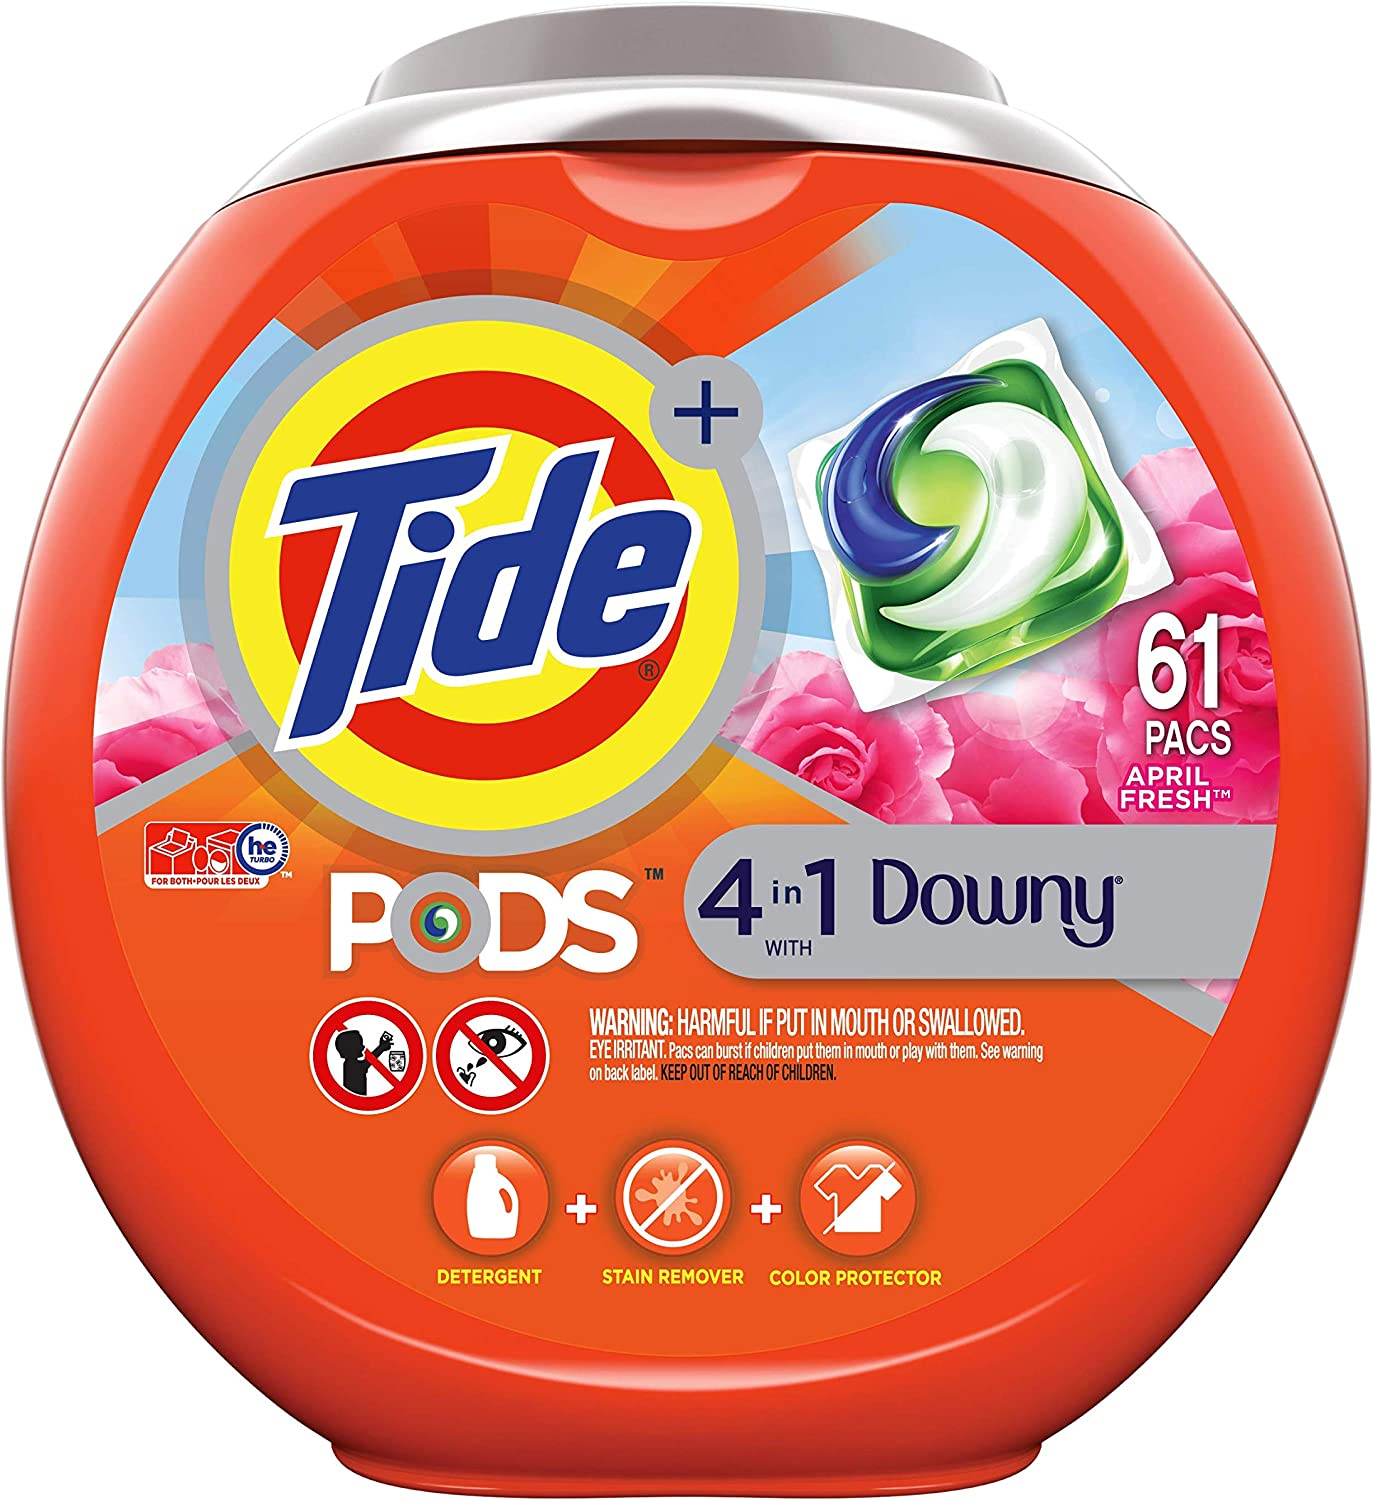 Tide PODS Plus Downy 4 in 1 HE Turbo Laundry Detergent Pacs